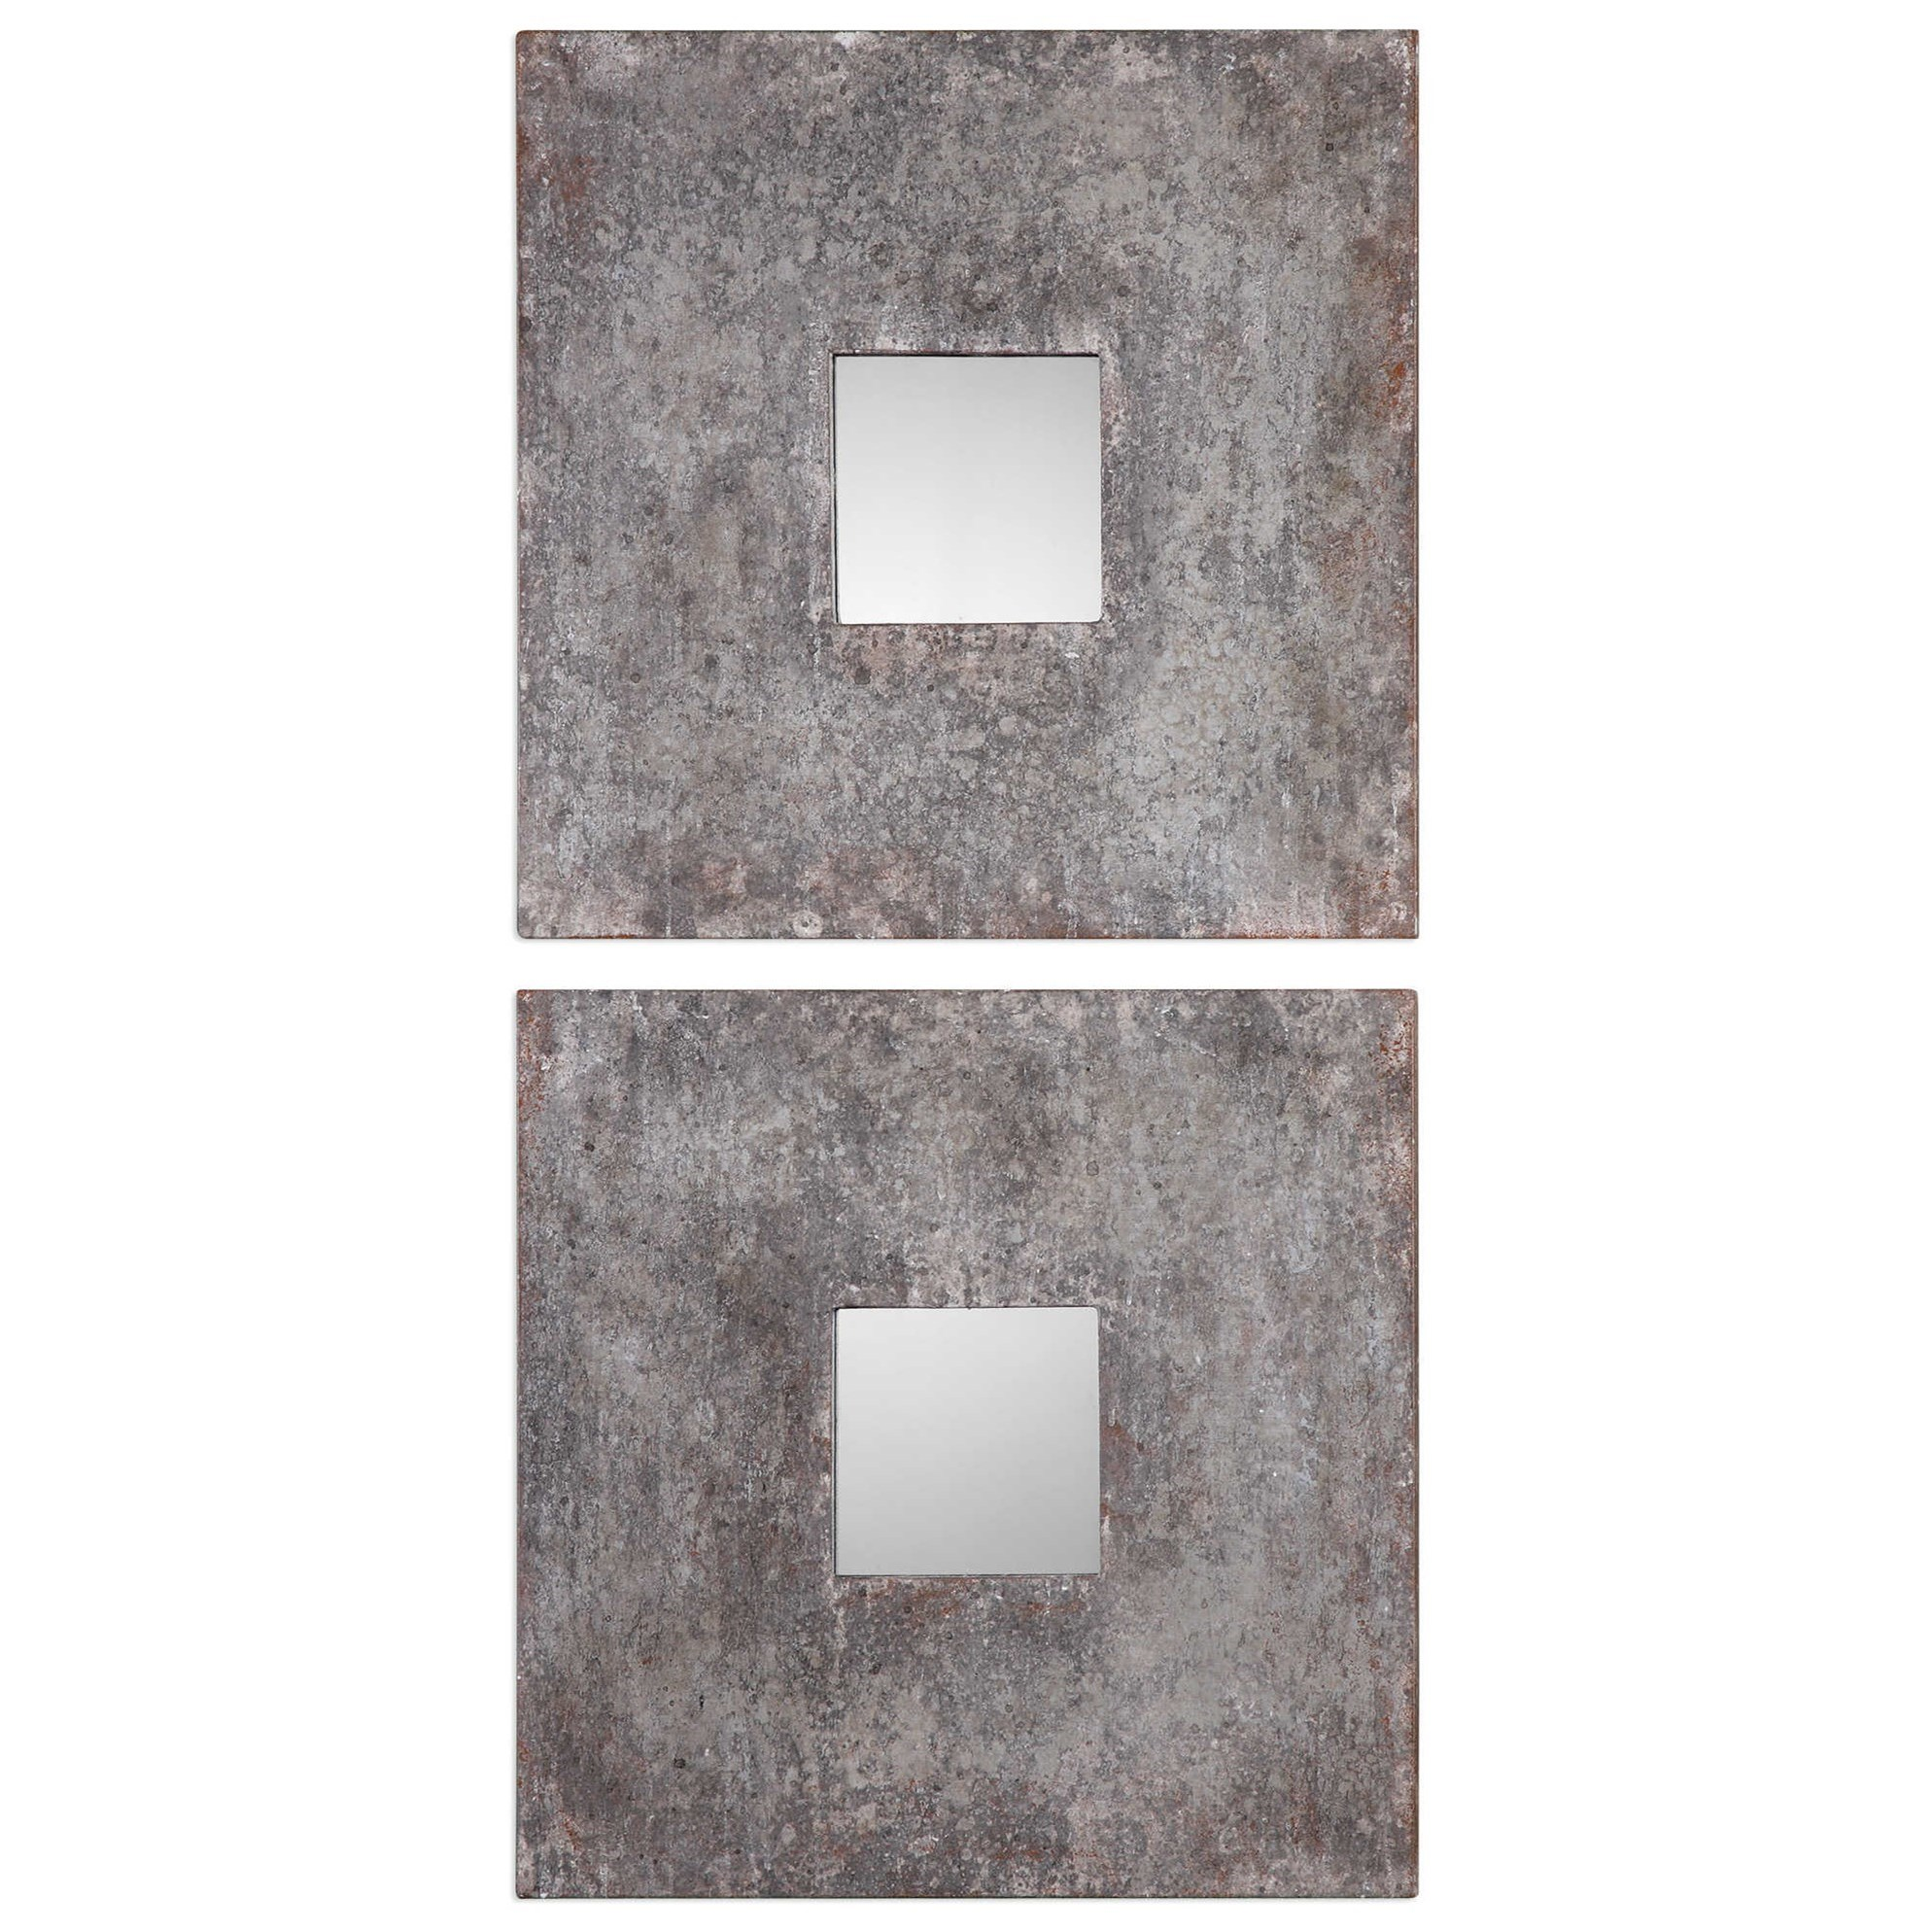 Altha Burnished Square Mirrors (Set of 2)